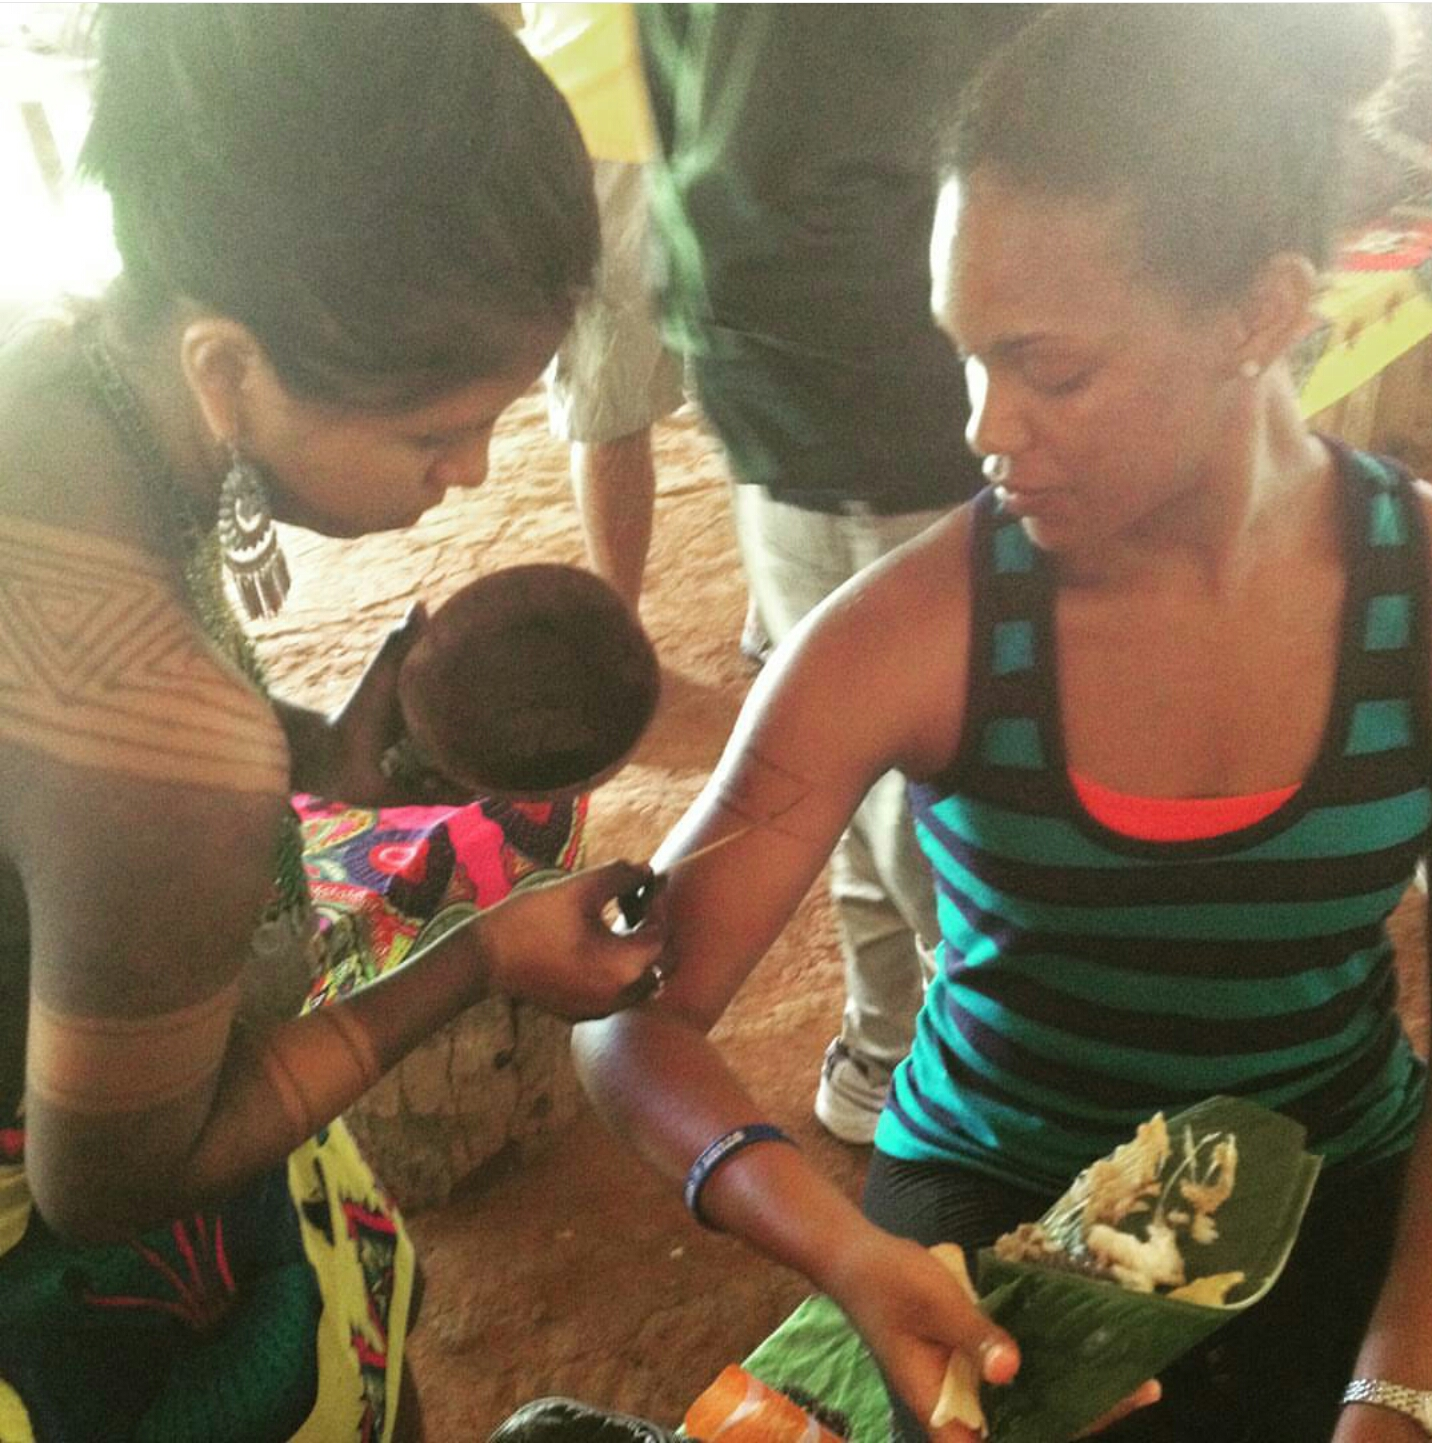 Teisha in Panama with local Tribe as she gets a temporary tattoo and eats local delicacies.